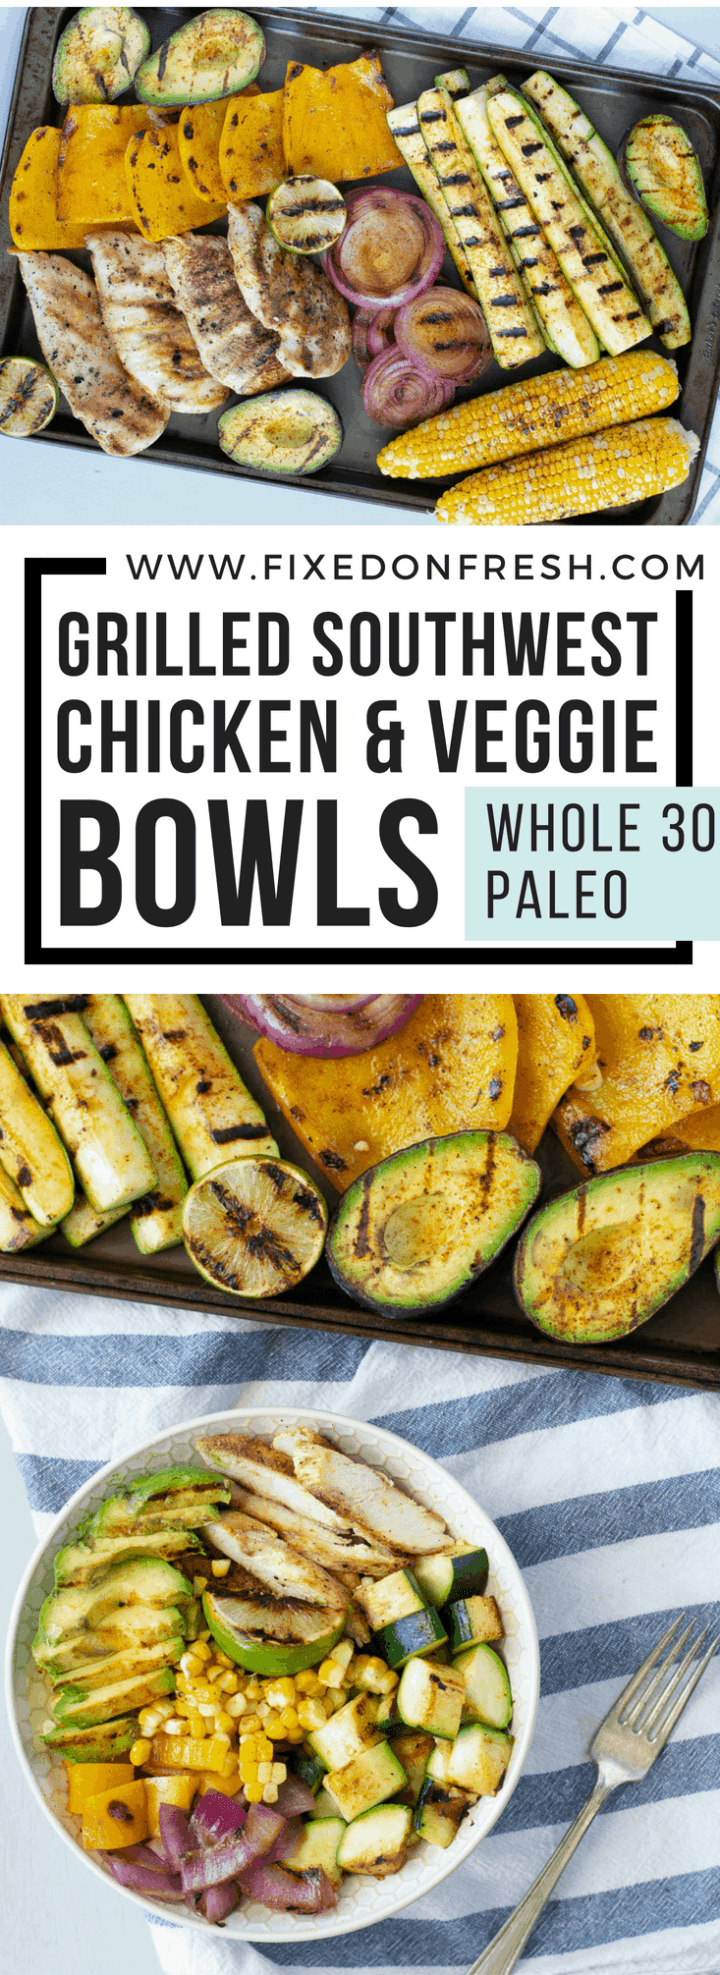 Grilled Chicken and Veggie Bowl {paleo - whole30} is easy to make and great for meal prep lunches or an easy one pan dinner. #grill #grilledveggies